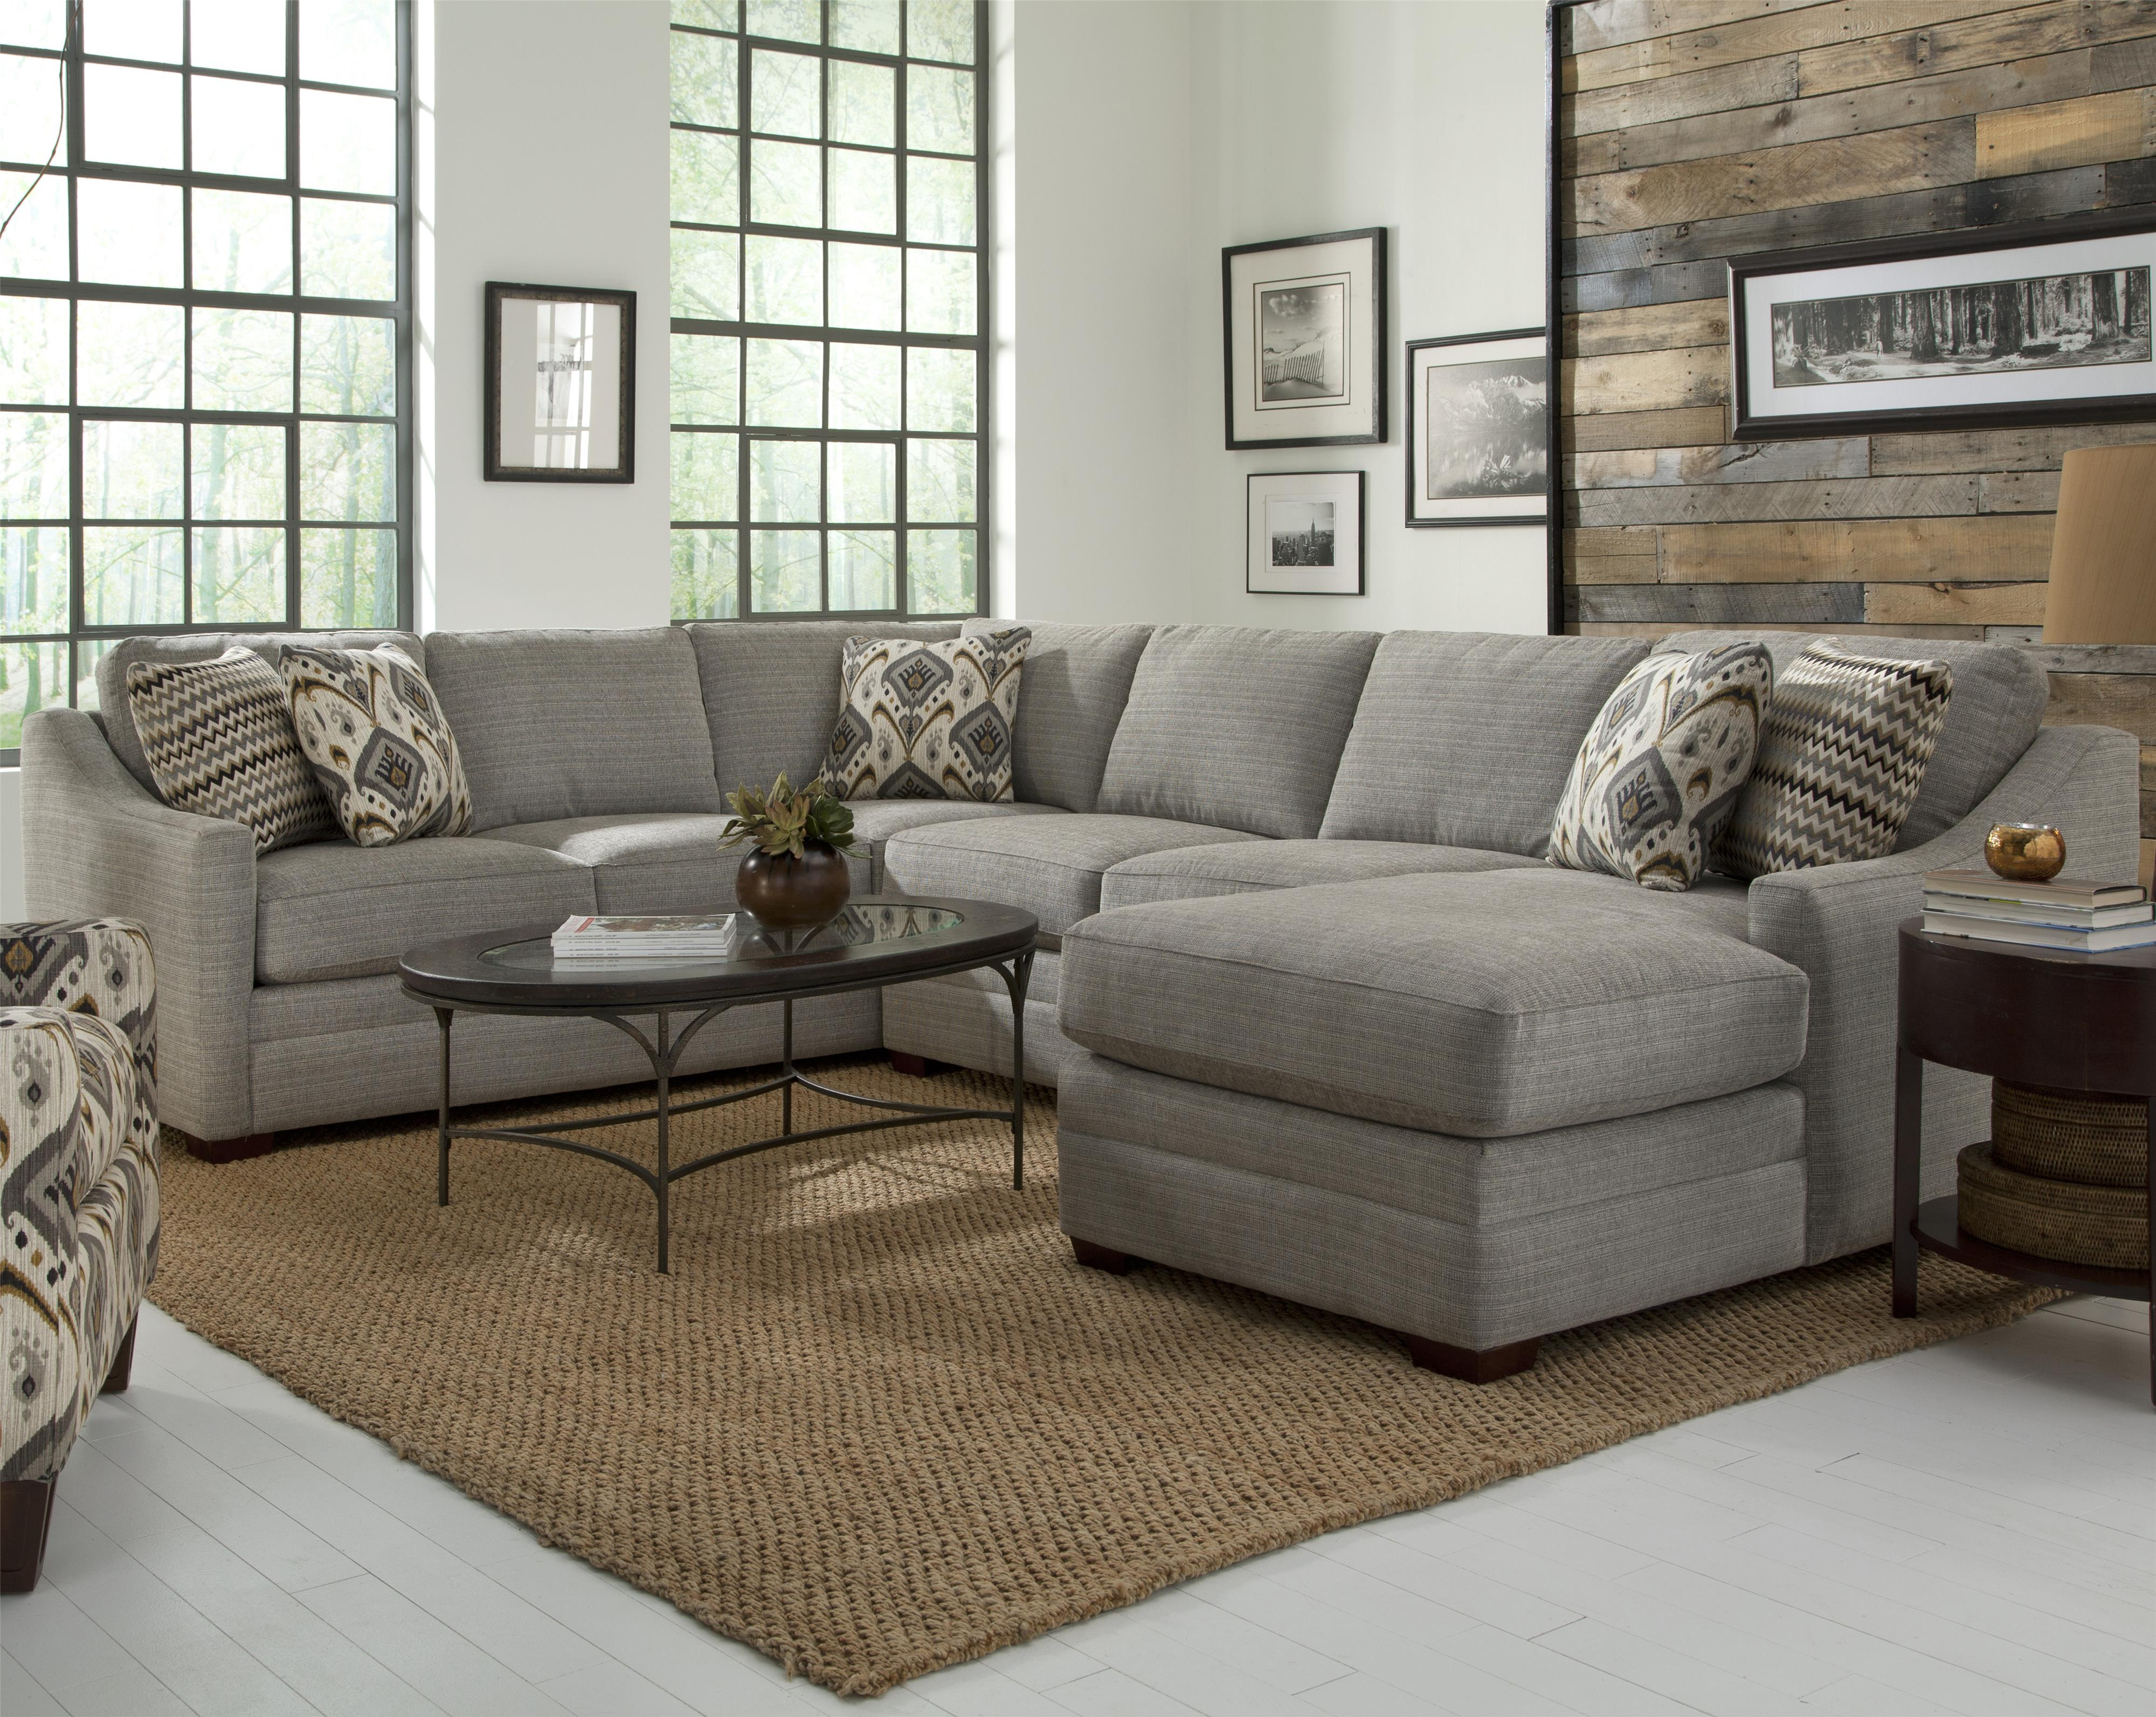 Craftmaster F9 Custom Collection Customizable Four Piece Sectional Sofa |  Olindeu0027s Furniture | Sectional Sofas